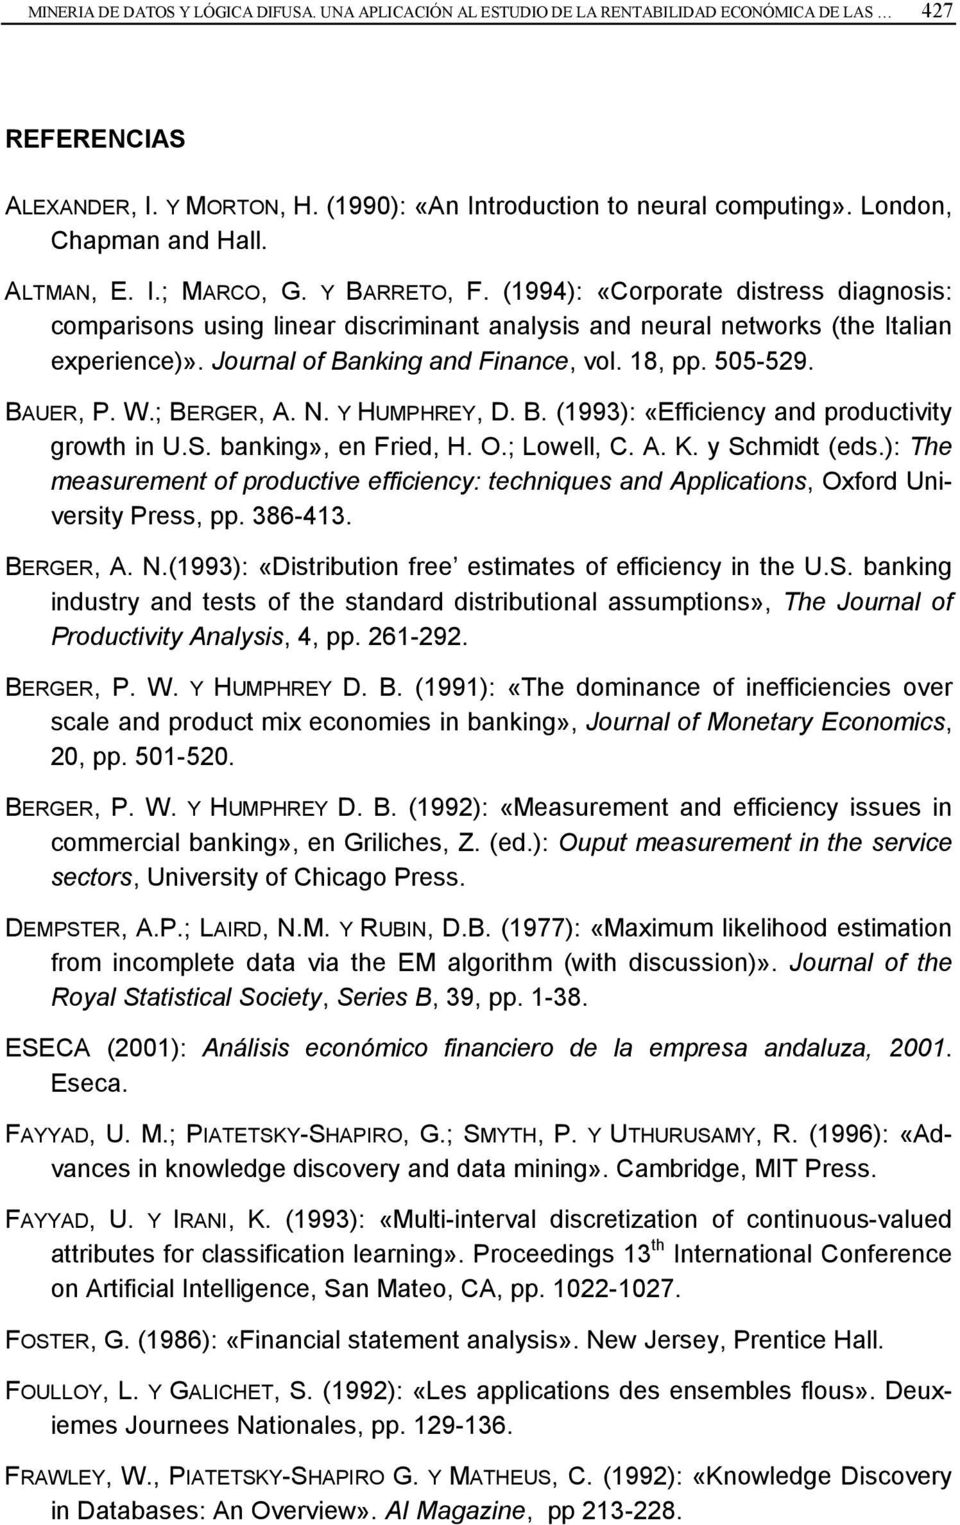 Journal of Banking and Finance, vol. 18, pp. 505-529. BAUER, P. W.; BERGER, A. N. Y HUMPHREY, D. B. (1993): «Efficiency and productivity growth in U.S. banking», en Fried, H. O.; Lowell, C. A. K.